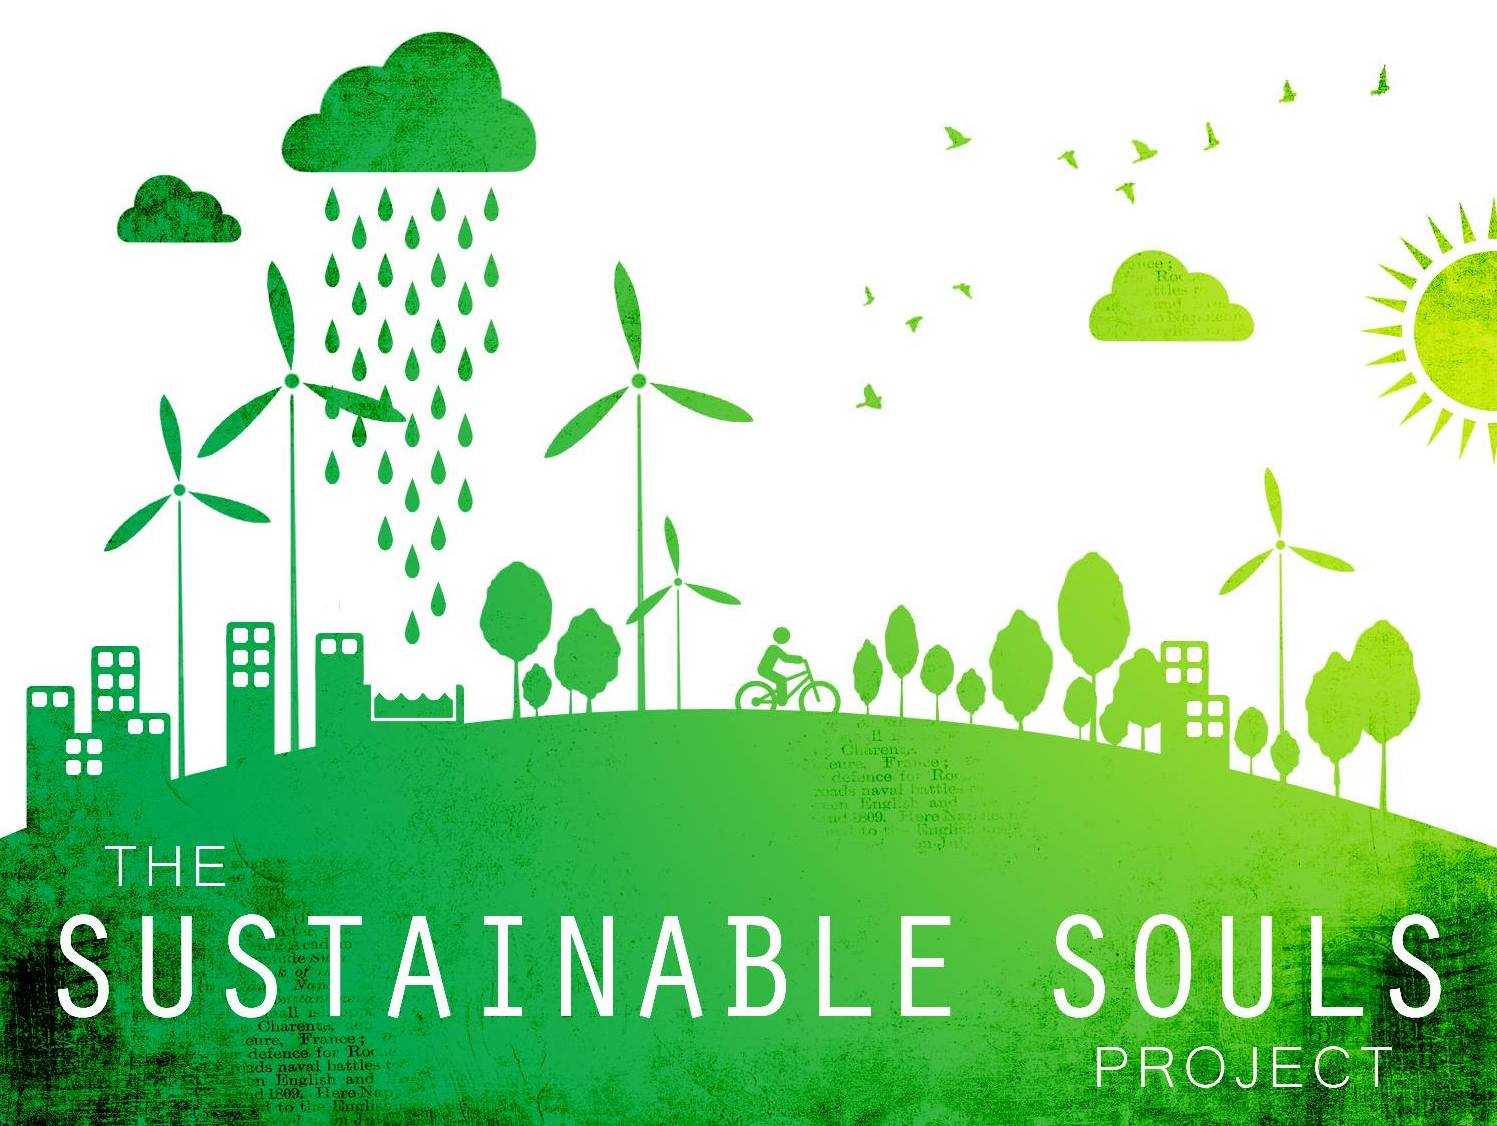 The Sustainable Soul Project